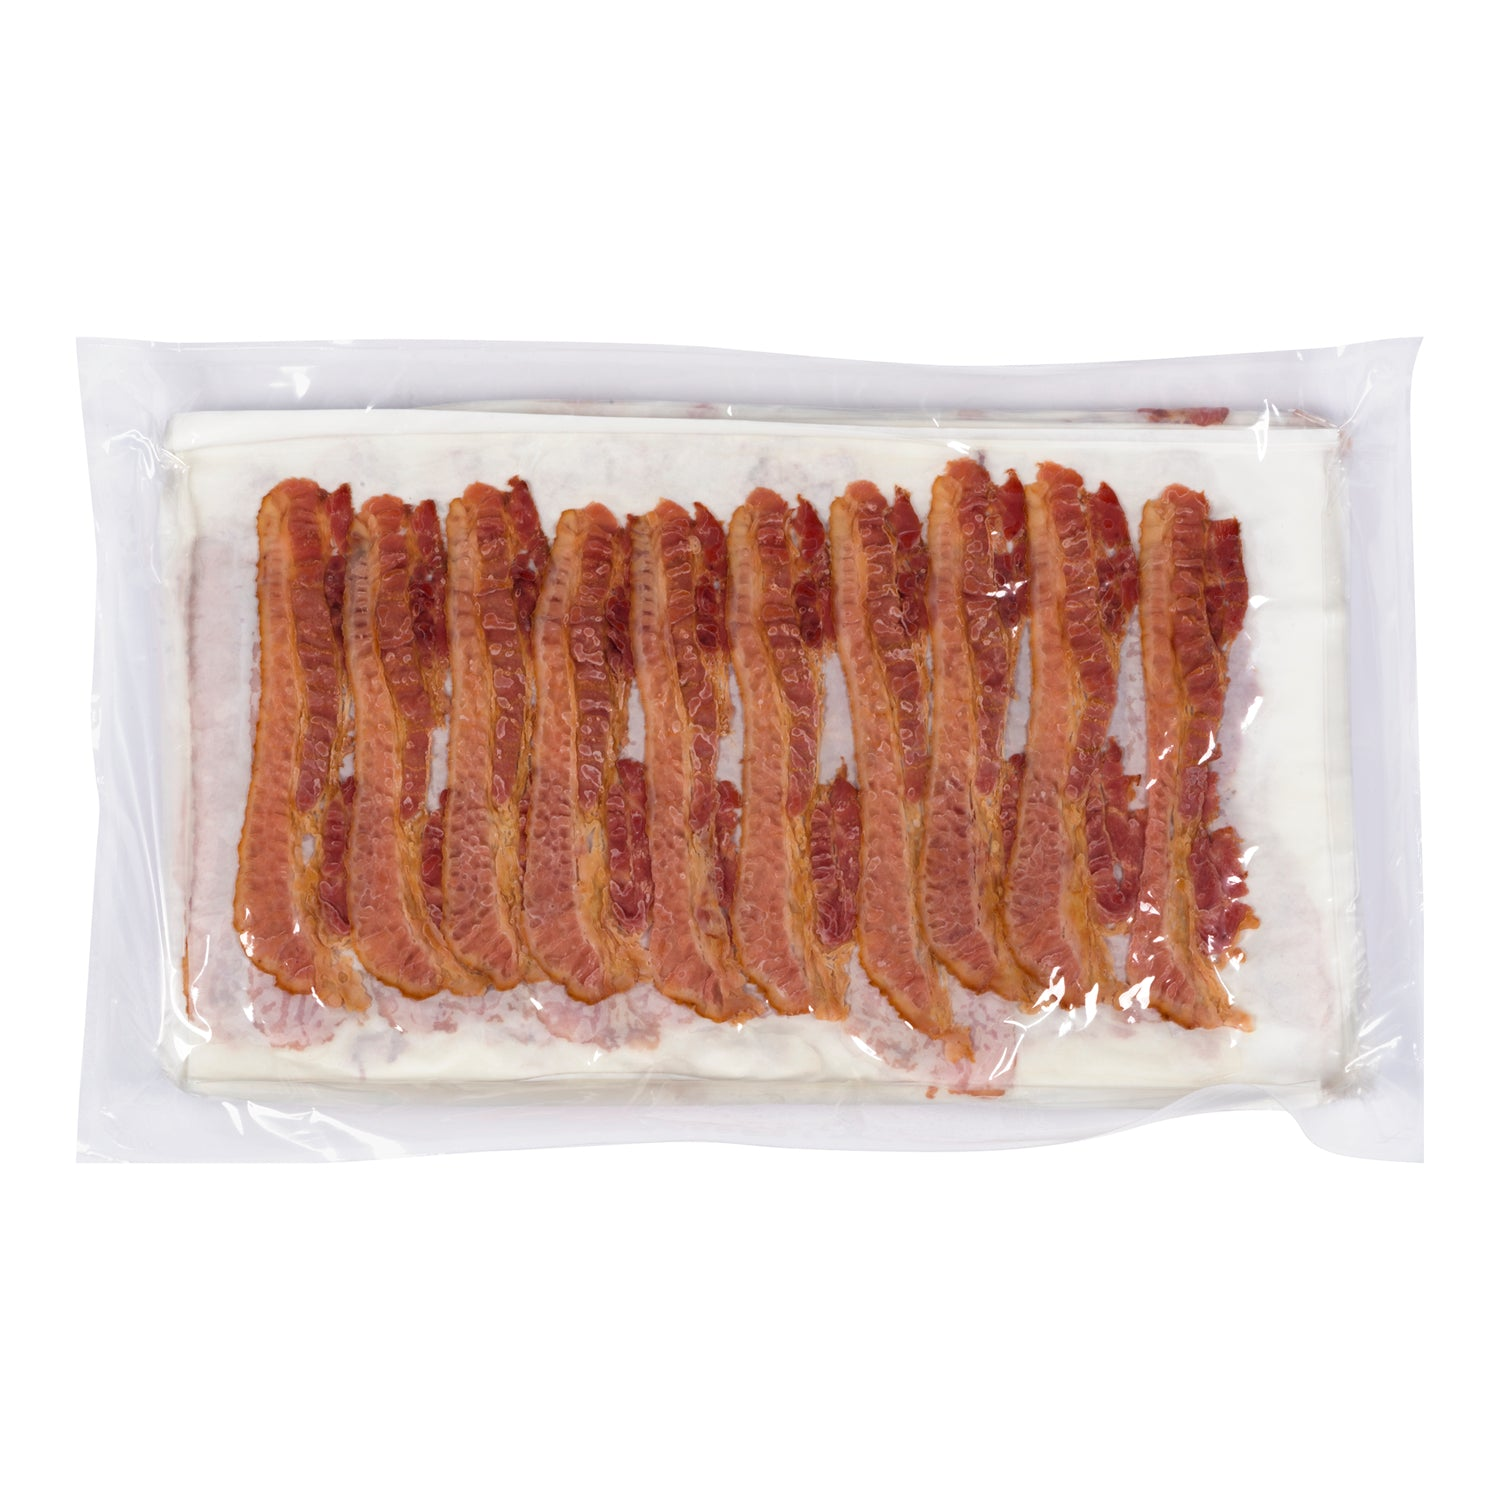 Olymel Fresh Extra Thin Sliced Bacon 300 slices Pre-Cooked - 1 Pack [$0.43/slice]